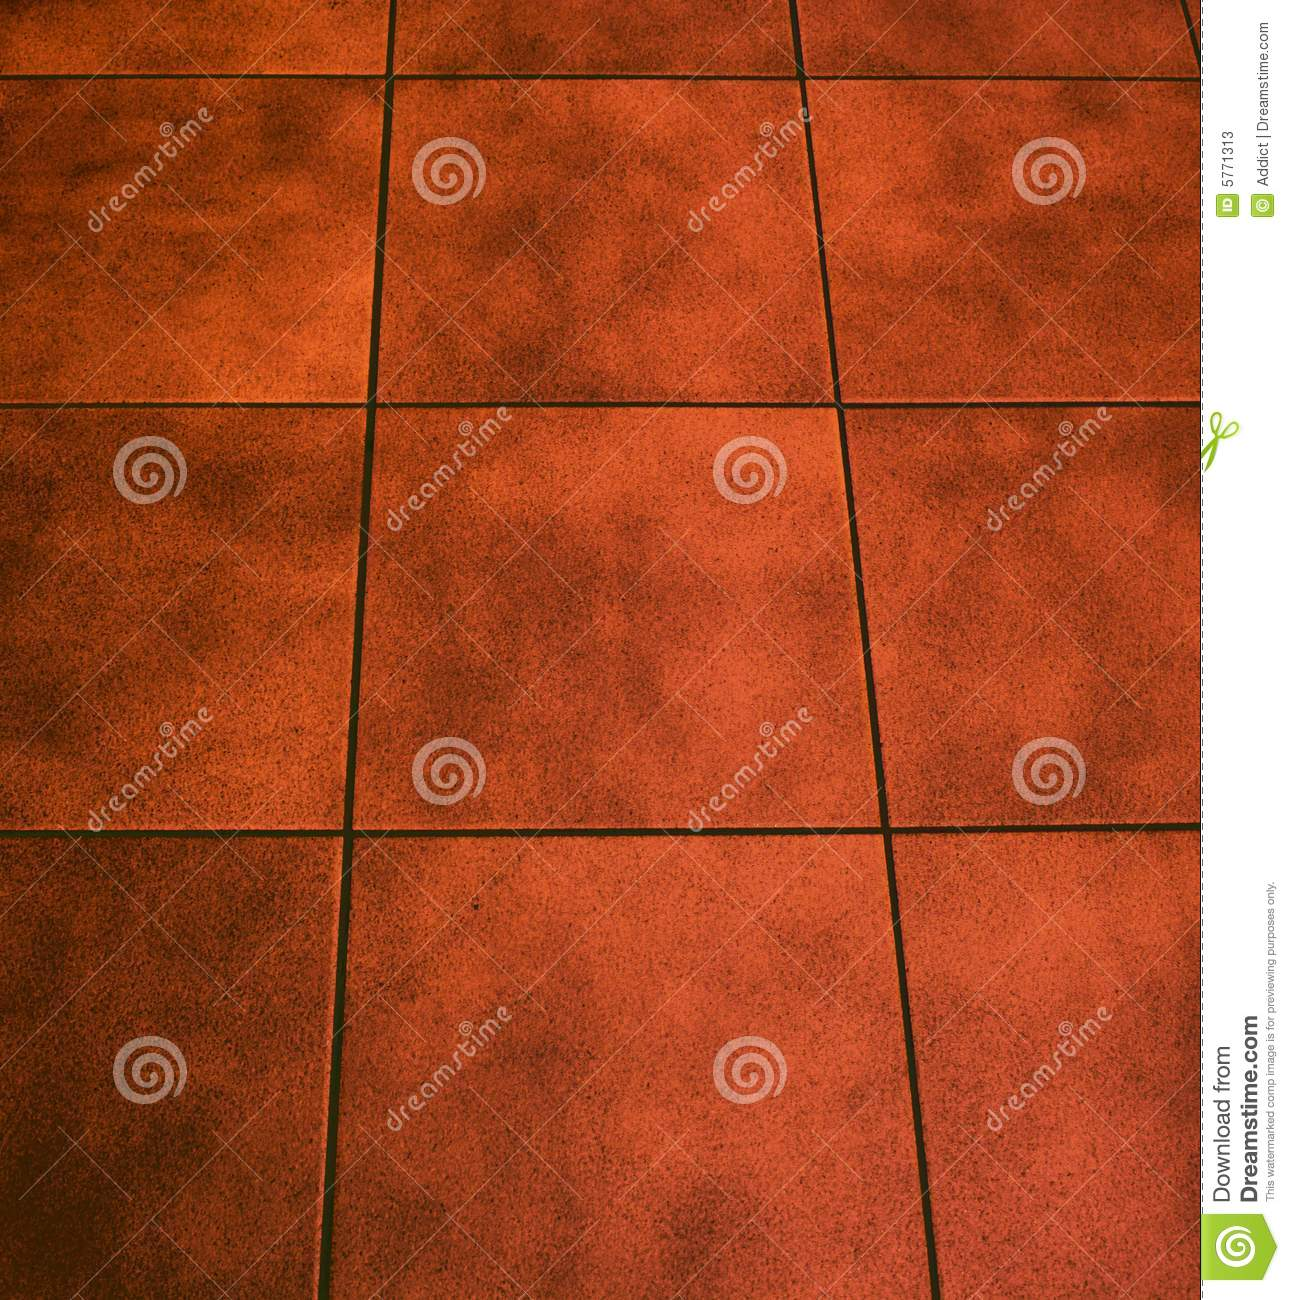 Floor tile stock image image of cream pale pitted regular 5771313 floor tile dailygadgetfo Gallery